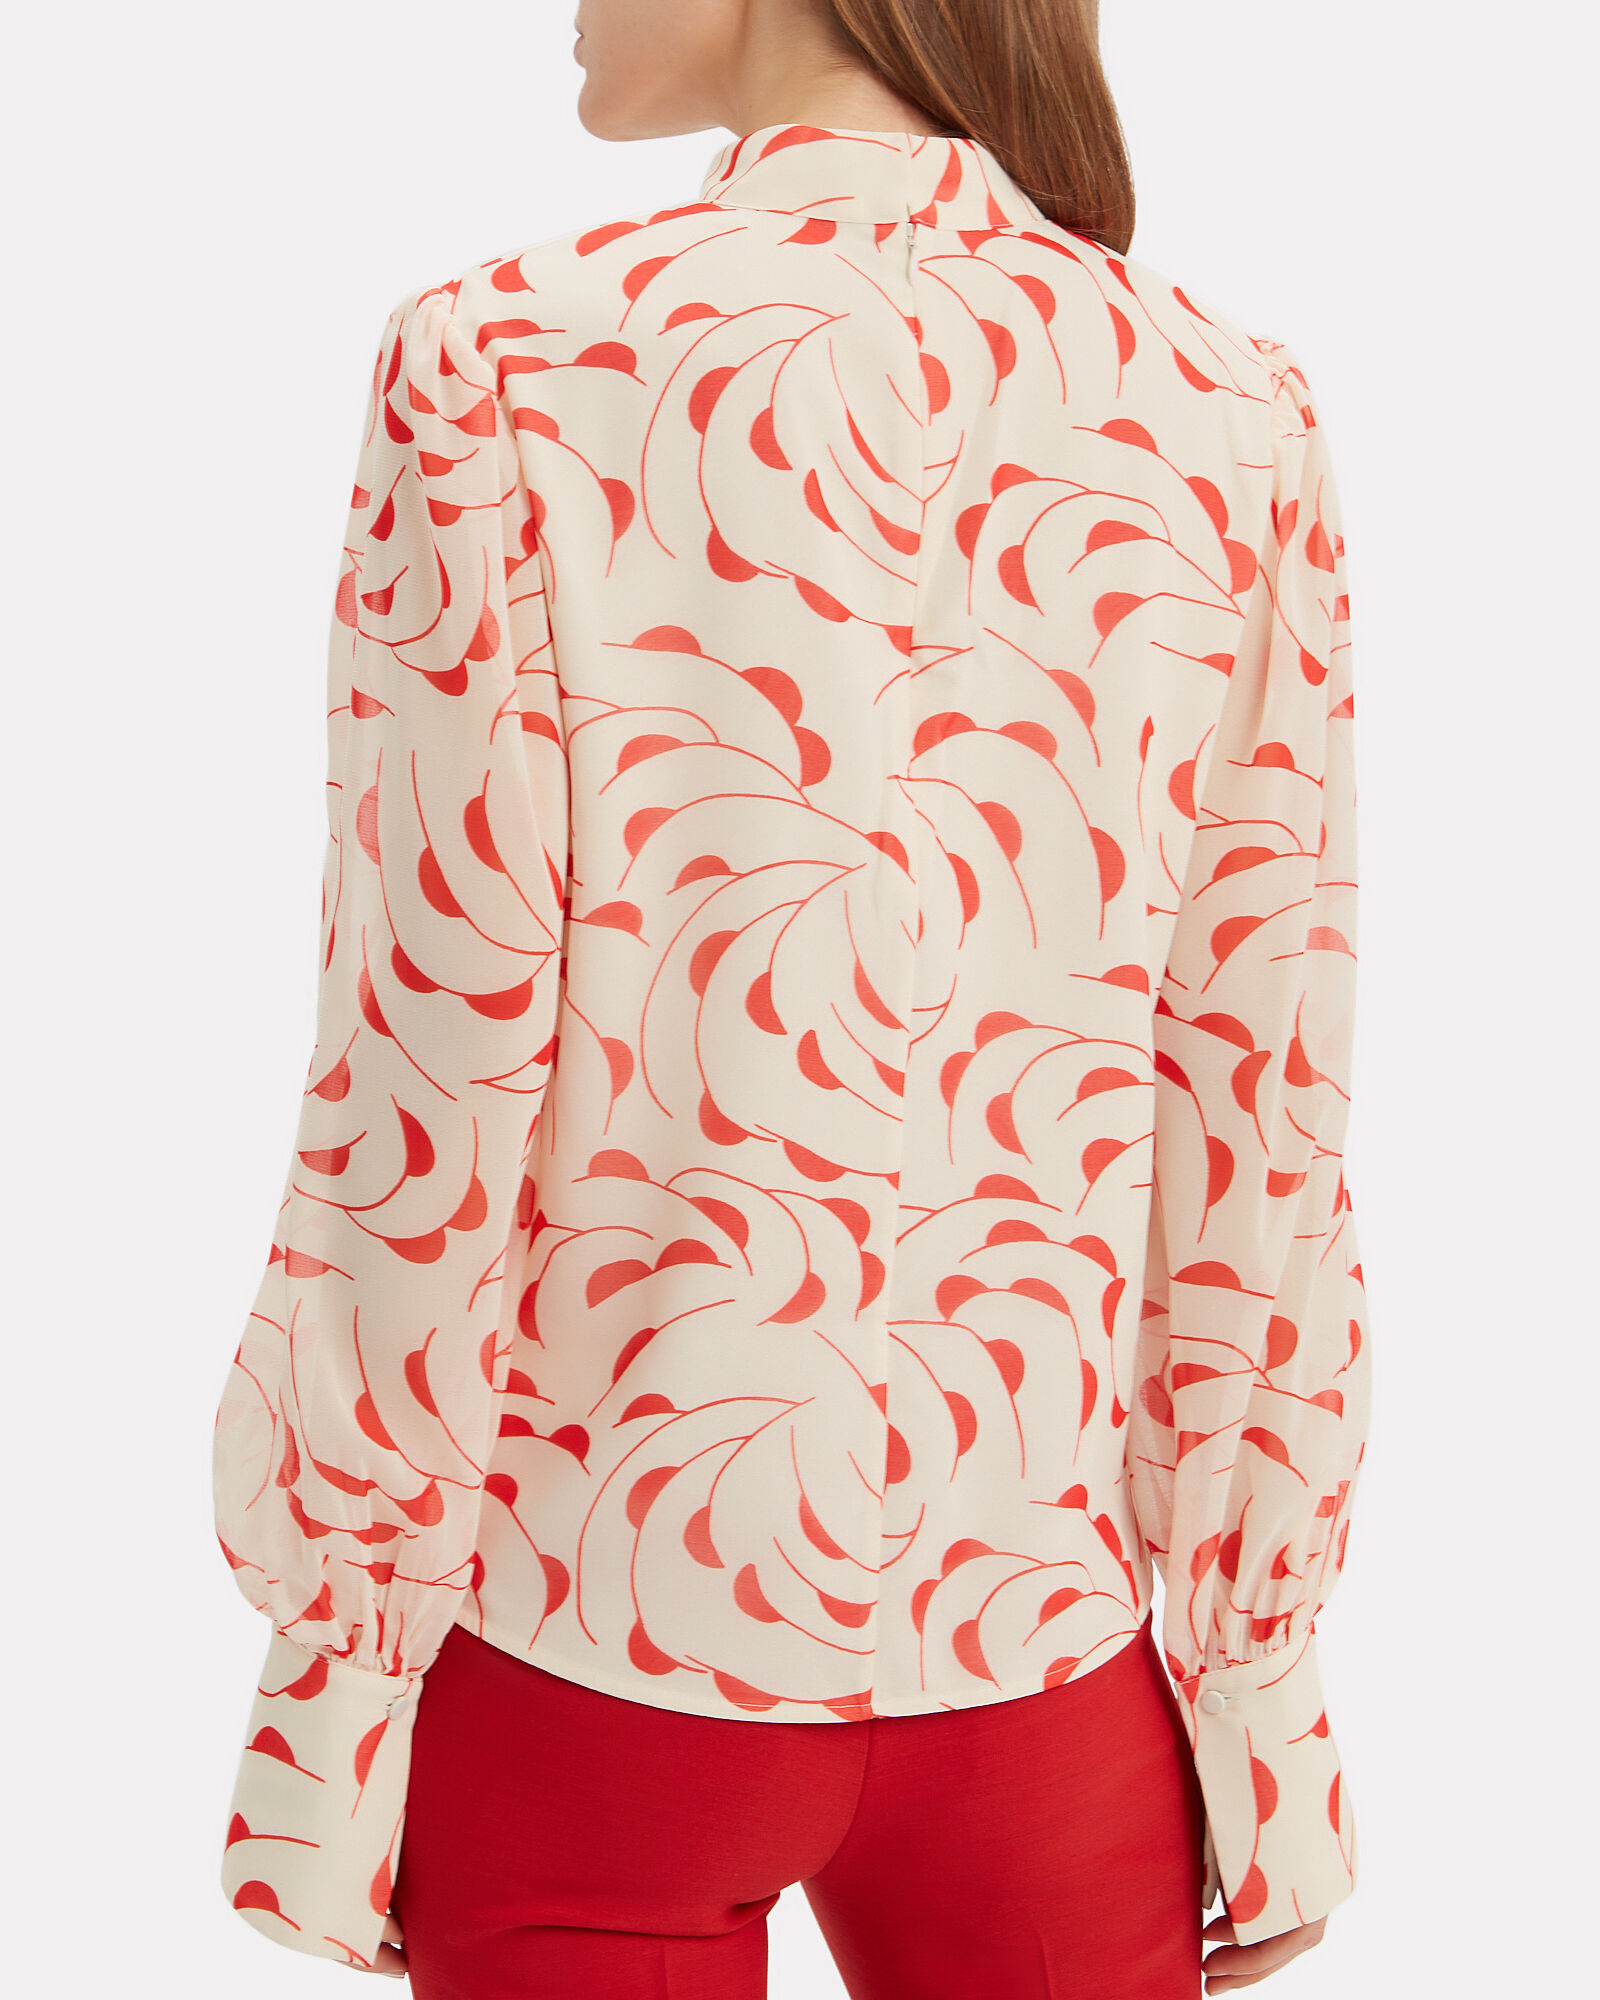 High Neck Printed Blouse, ECRU/RED, hi-res